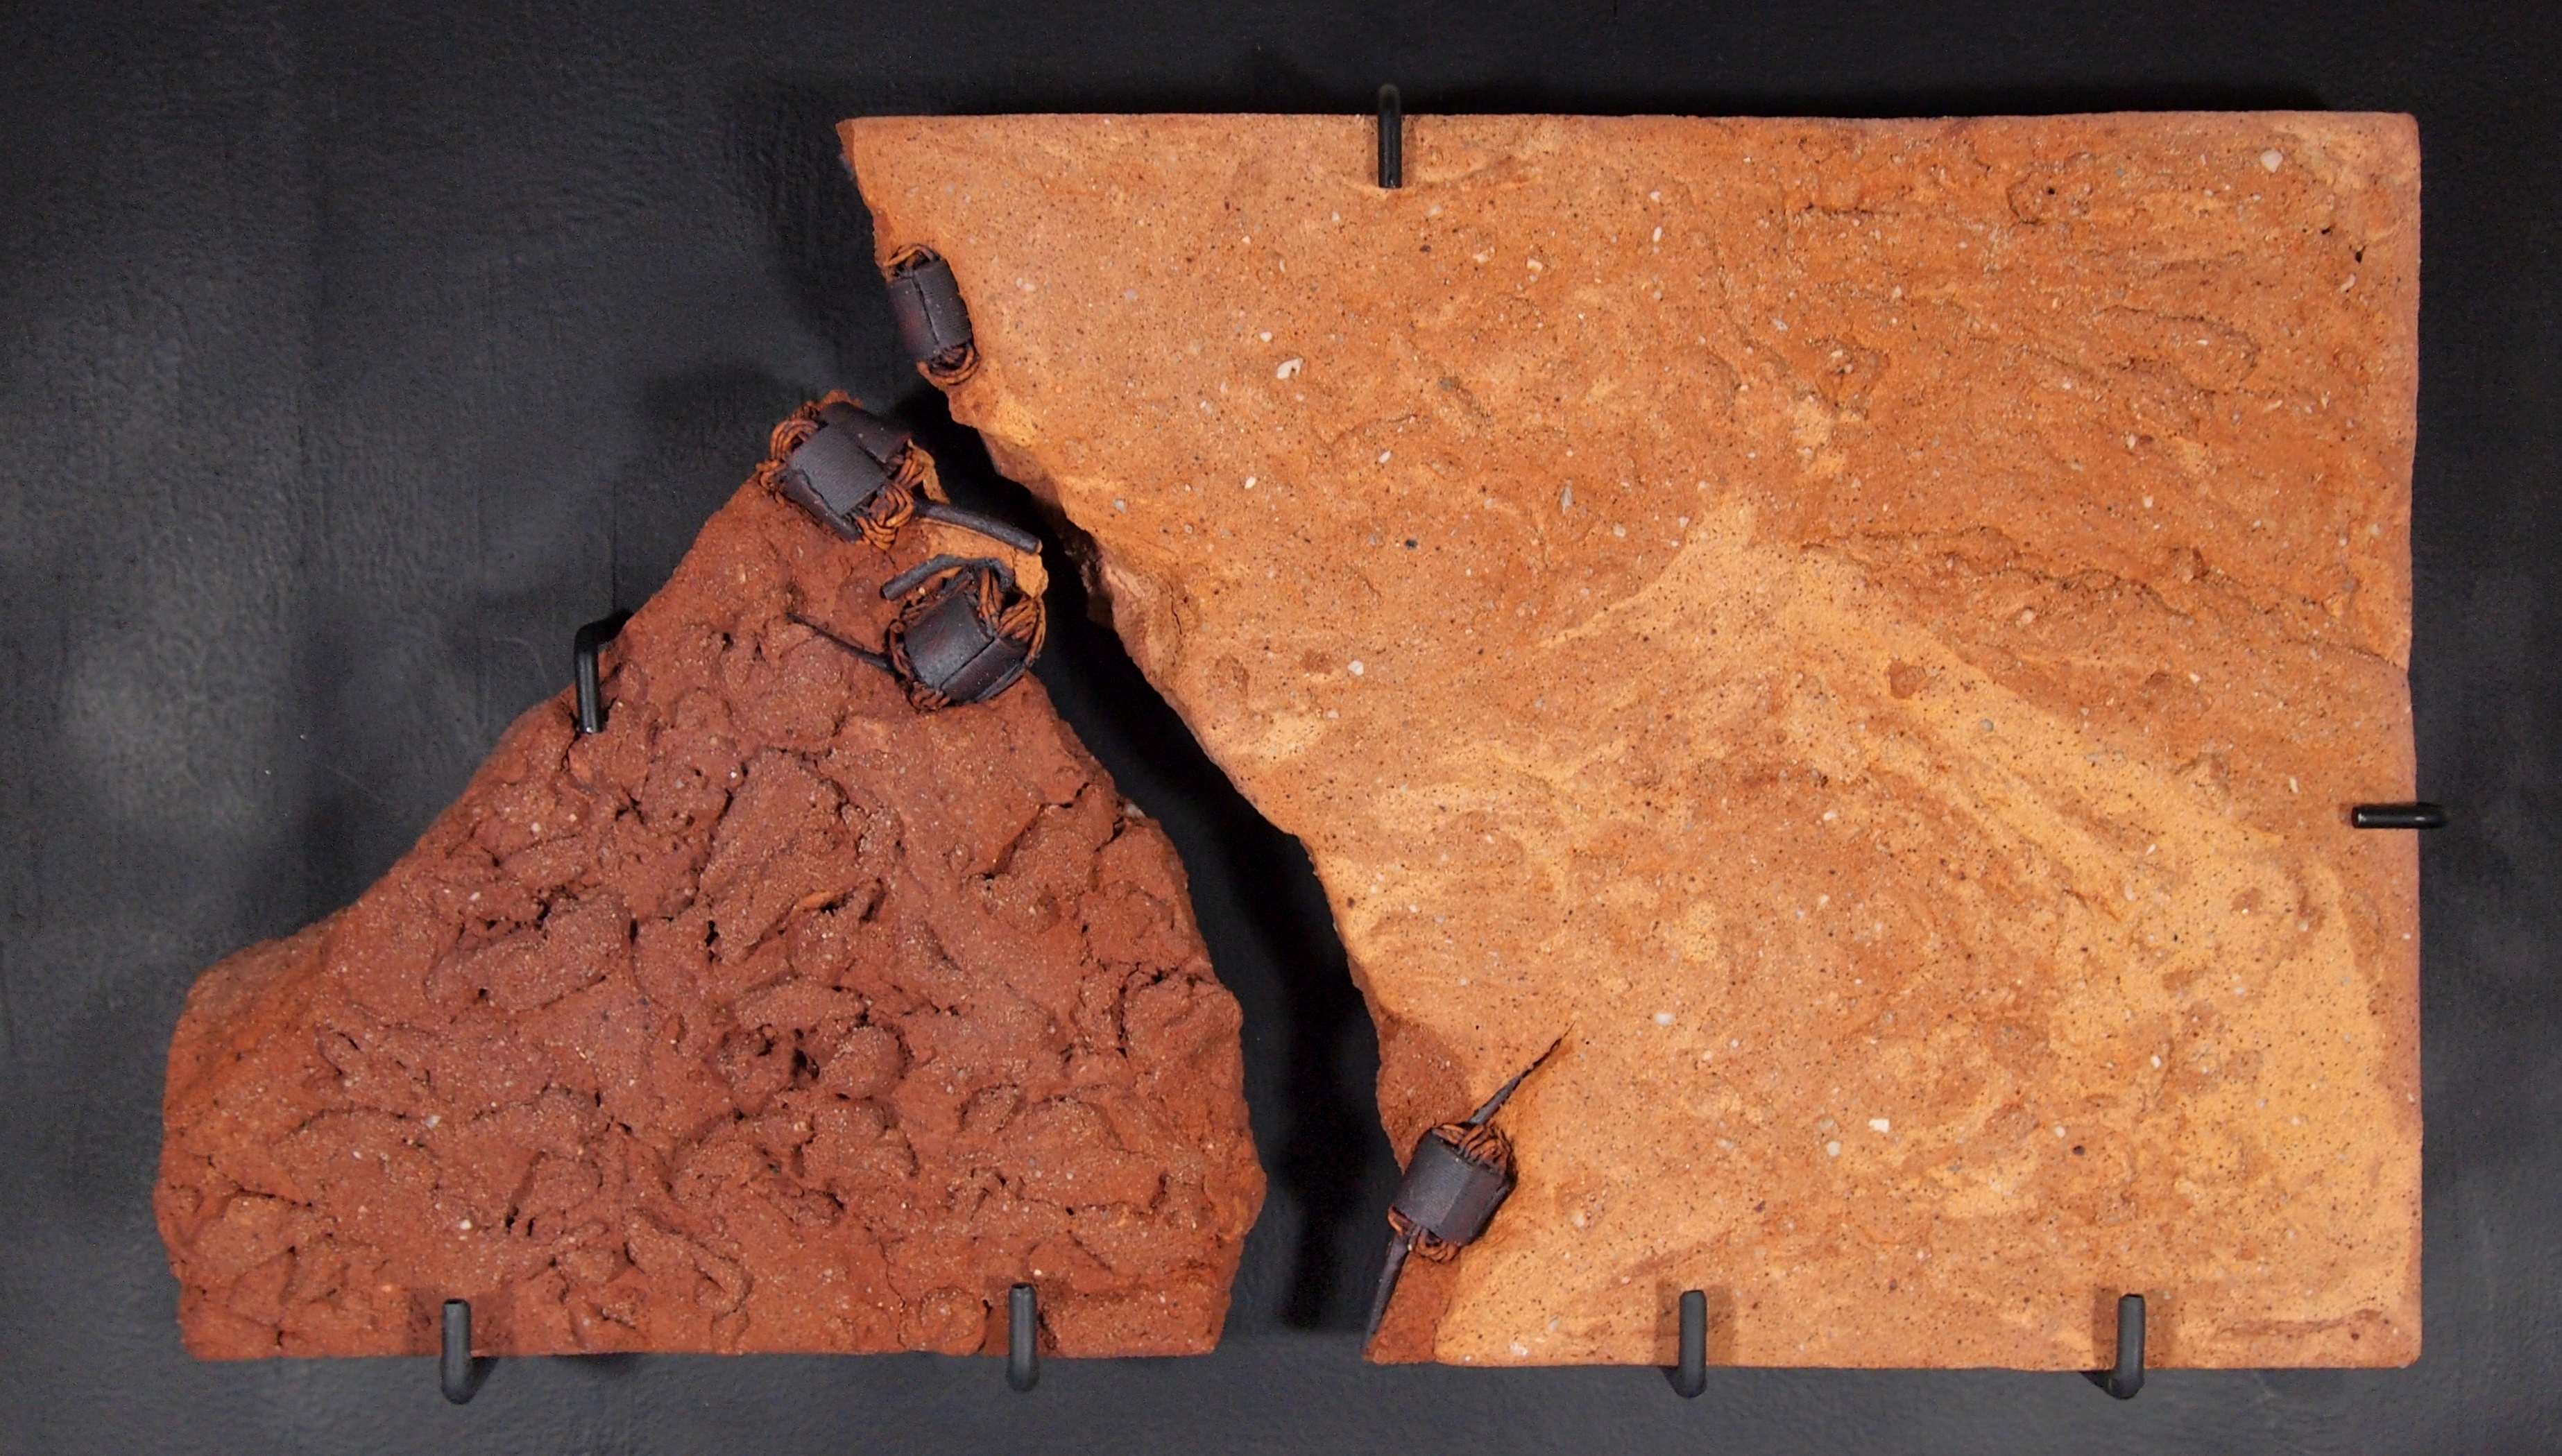 Sandstone Plate with Rotors